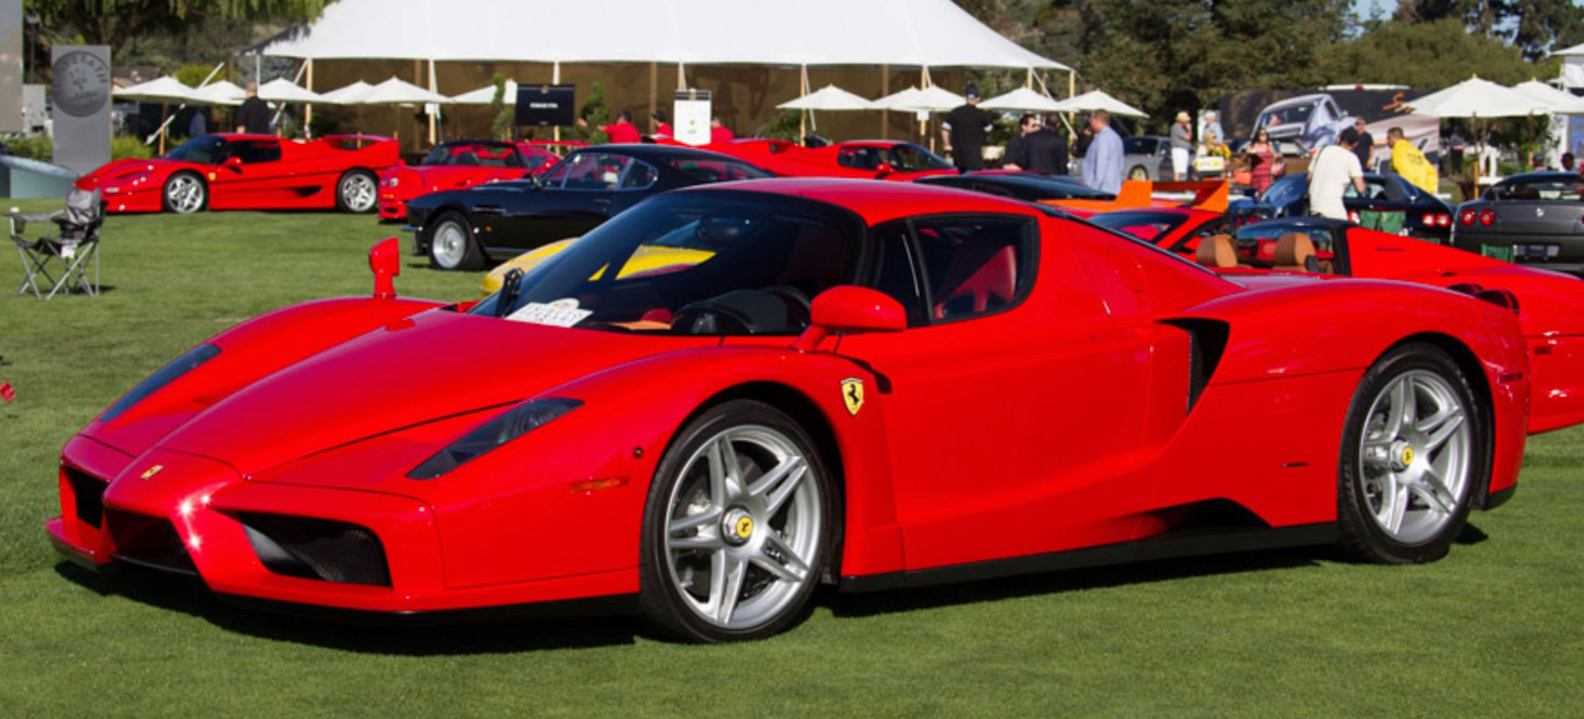 Toyota Stevens Creek >> Coyote Creek Concours d'Elegance is June 23 in Morgan Hill, California - Highline Autos - Your ...